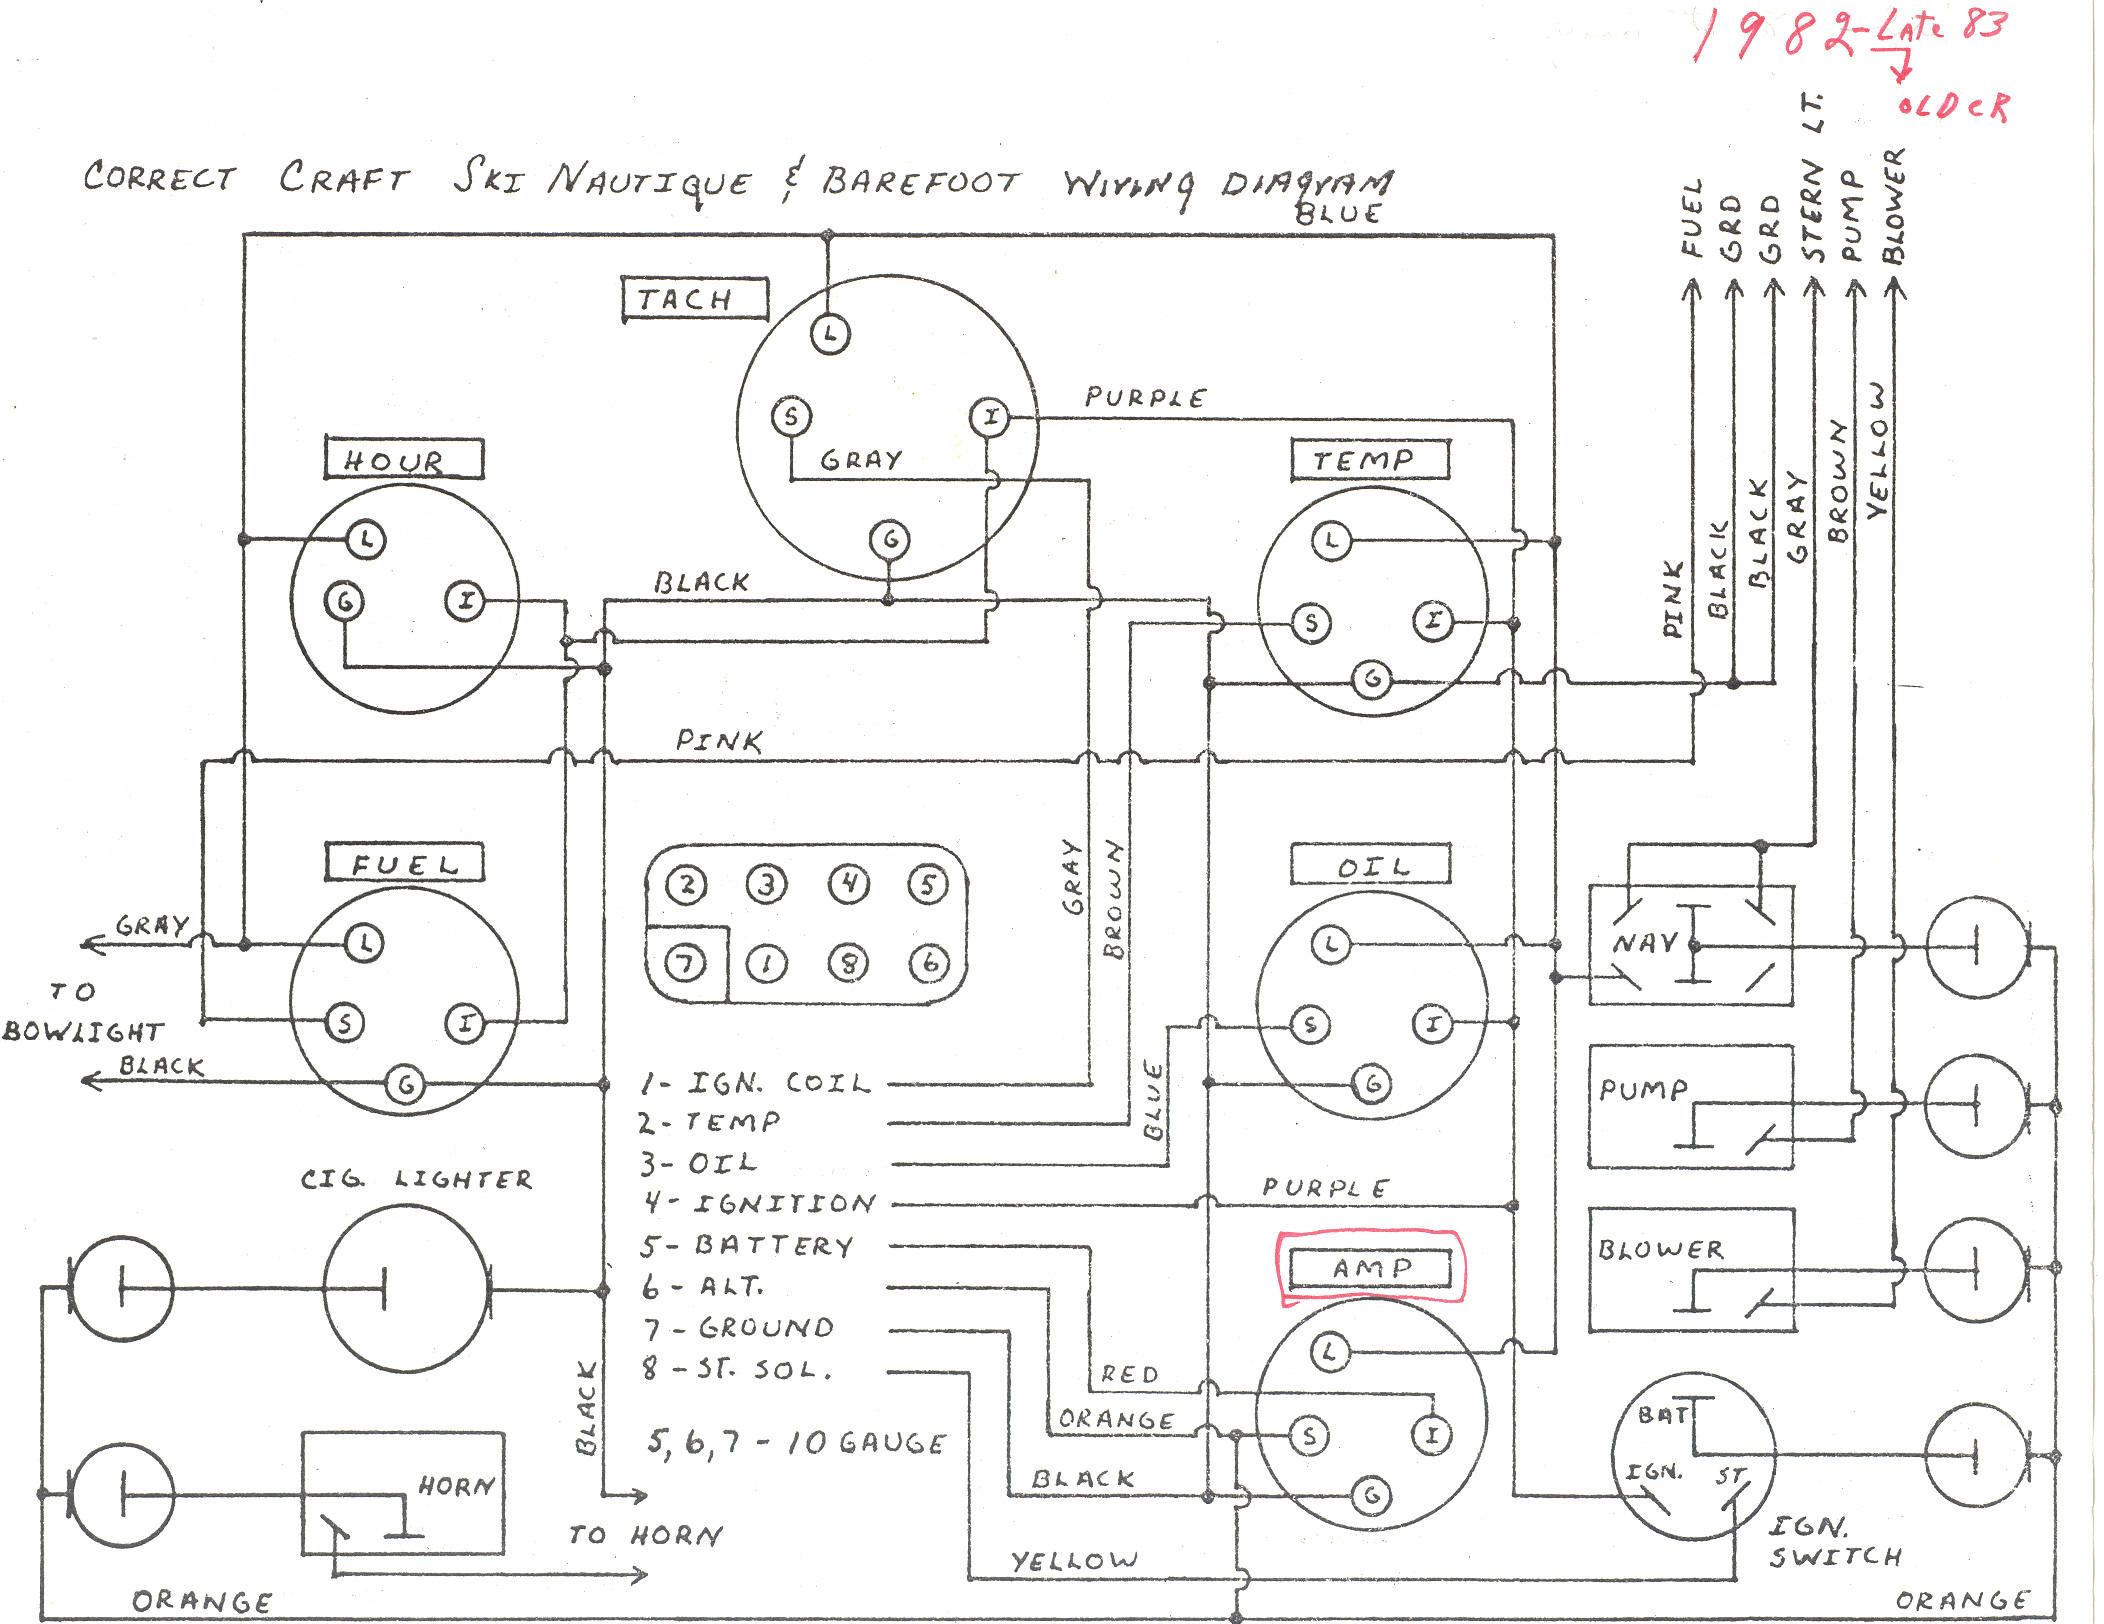 [WRG-2570] 71 Chevelle Door Diagram Wiring Schematic